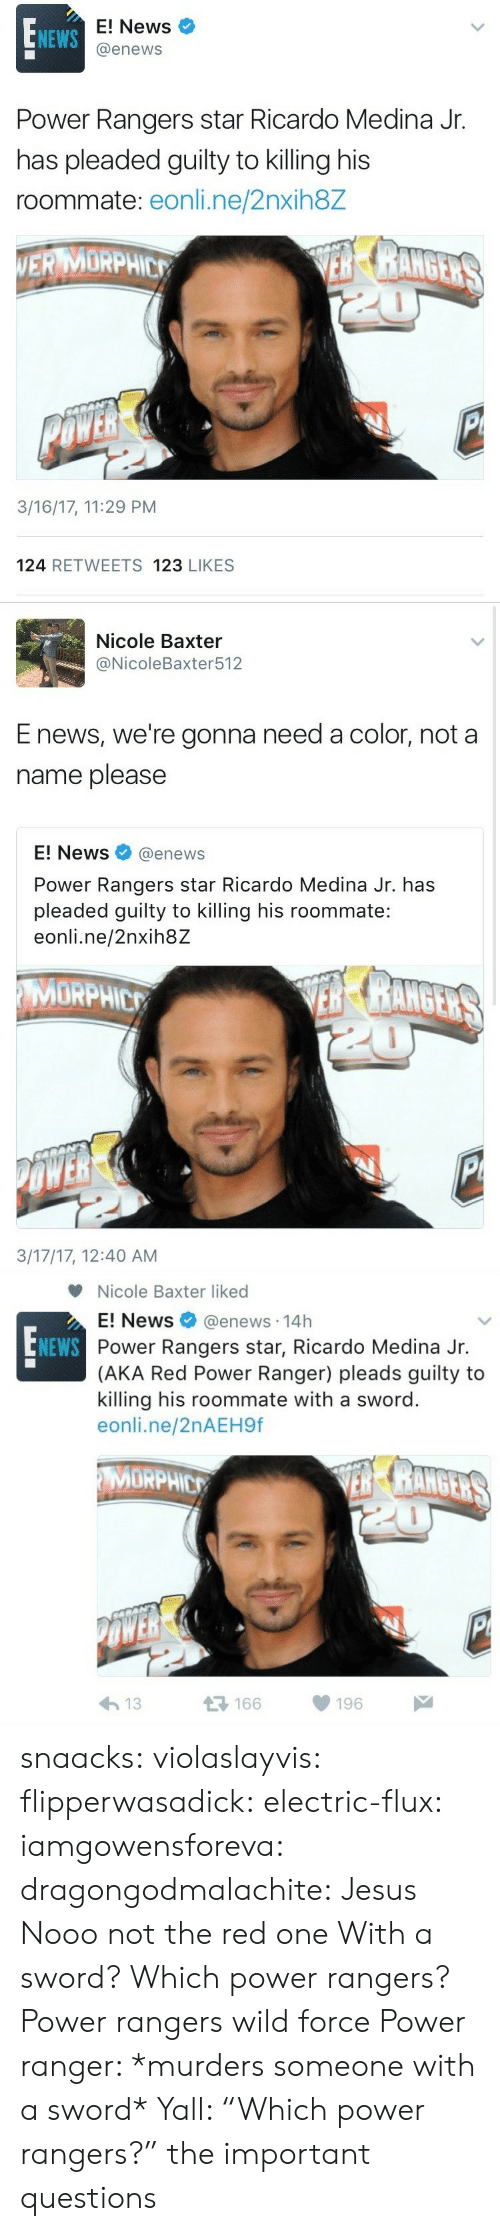 "ranger: E! News  @enews  NEWS  Power Rangers star Ricardo Medina Jr.  has pleaded guilty to killing his  roommate: eonli.ne/2nxih8Z  ERMORPHE  3/16/17, 11:29 PM  124 RETWEETS 123 LIKES   Nicole Baxter  @NicoleBaxter512  E news, we're gonna need a color, not a  name please  E! News@enews  Power Rangers star Ricardo Medina Jr. has  pleaded guilty to killing his roommate:  eonli.ne/2nxih8Z  MORPHIC  3/17/17, 12:40 AM   Nicole Baxter liked  E! News @enews. 14h  Power Rangers star, Ricardo Medina Jr.  (AKA Red Power Ranger) pleads guilty to  killing his roommate with a sword  eonli.ne/2nAEH9f  NEWS  MORPHIC  μέ  166  196  わ13 snaacks:  violaslayvis: flipperwasadick:  electric-flux:   iamgowensforeva:   dragongodmalachite:  Jesus  Nooo not the red one   With a sword?  Which power rangers?   Power rangers wild force   Power ranger: *murders someone with a sword* Yall: ""Which power rangers?""   the important questions"